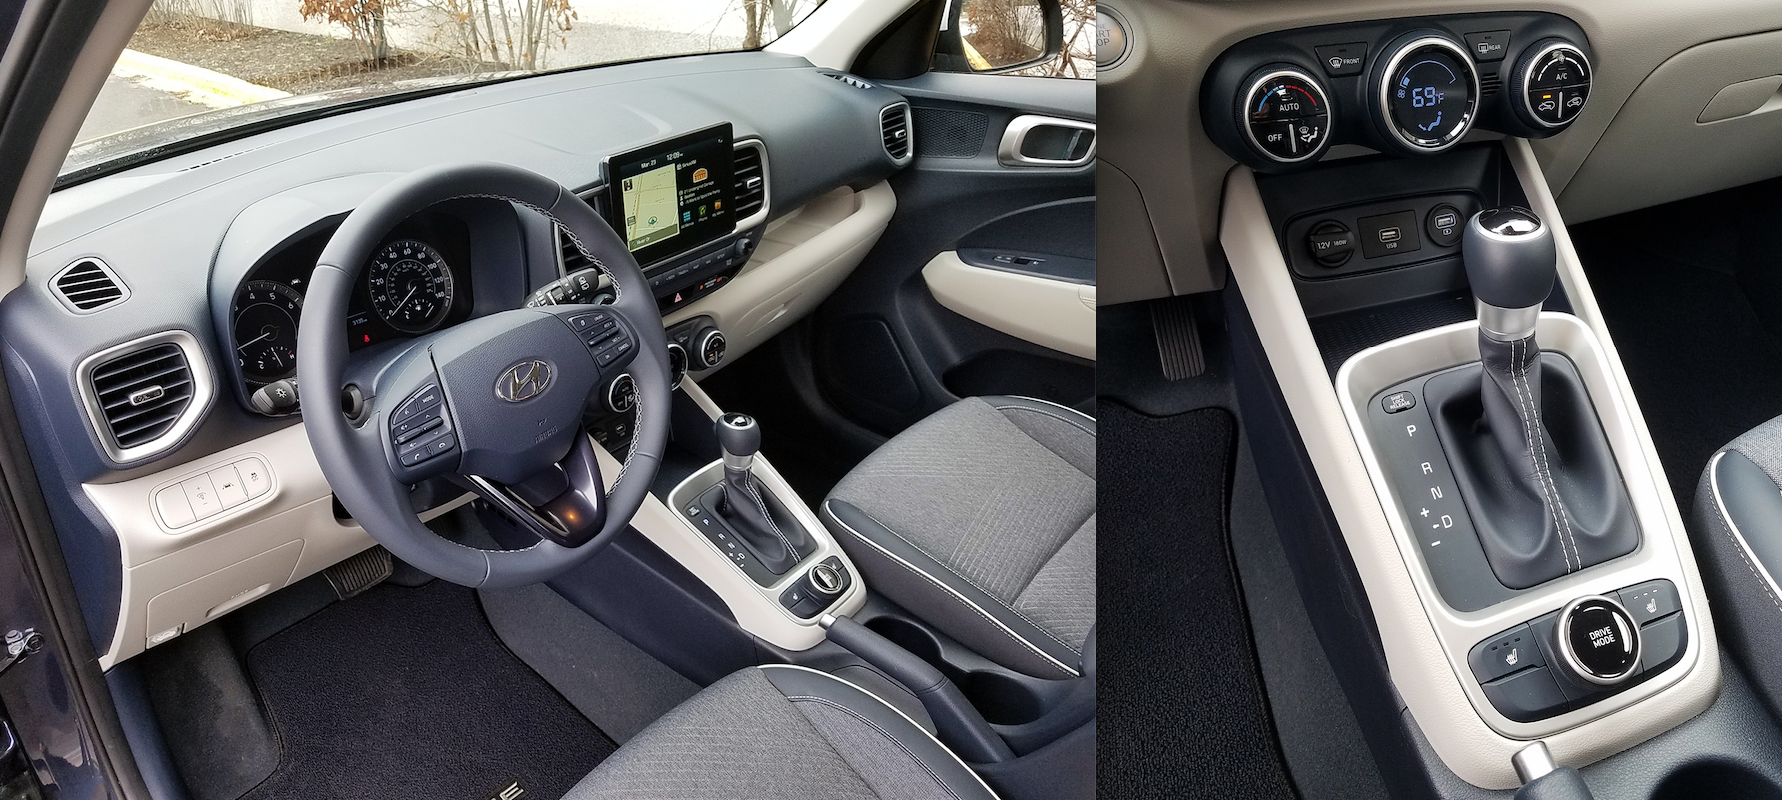 2020 Hyundai Venue Denim Edition